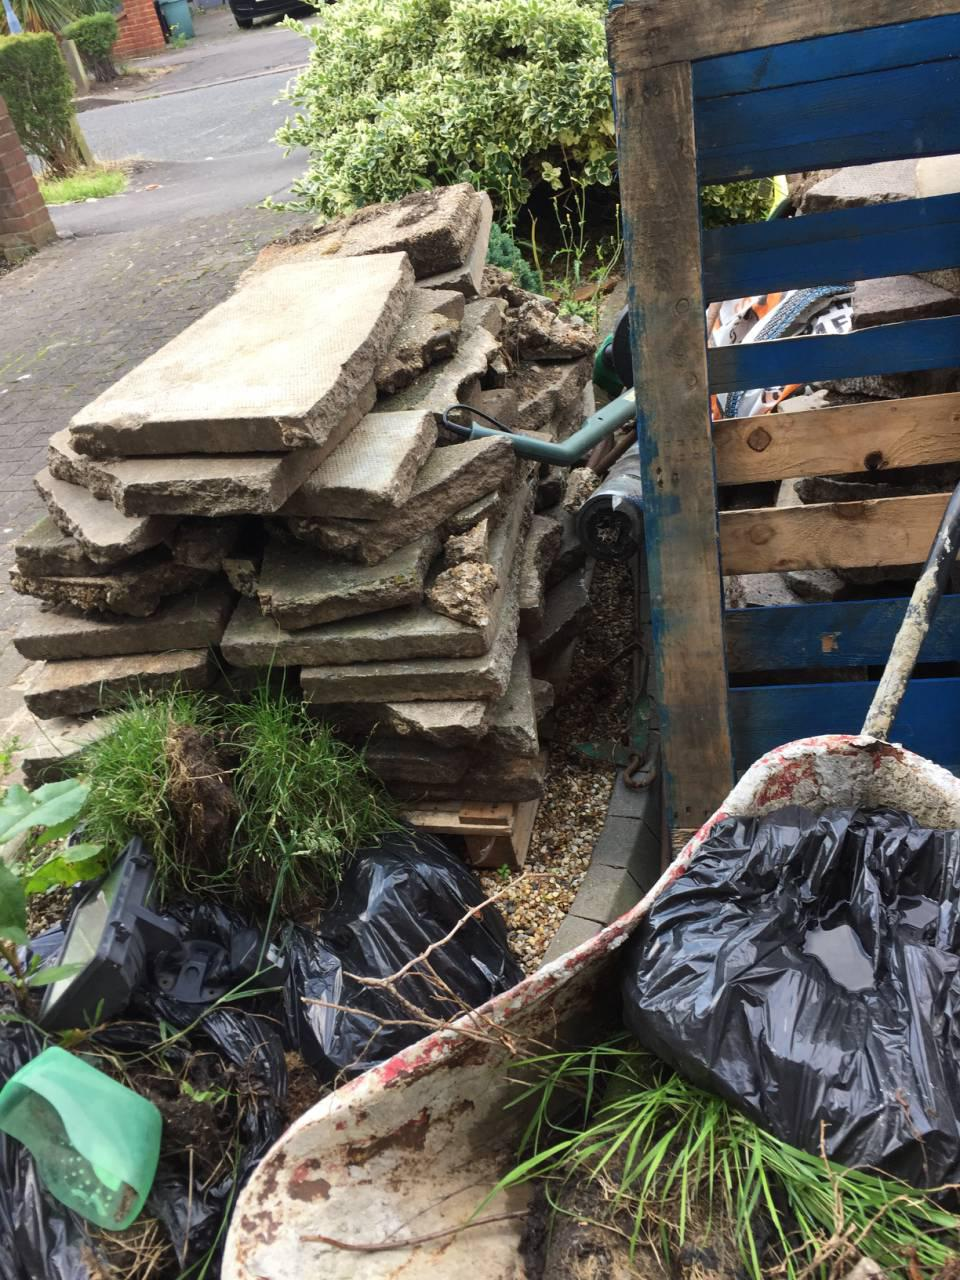 Lower Morden clearing waste collection SM4